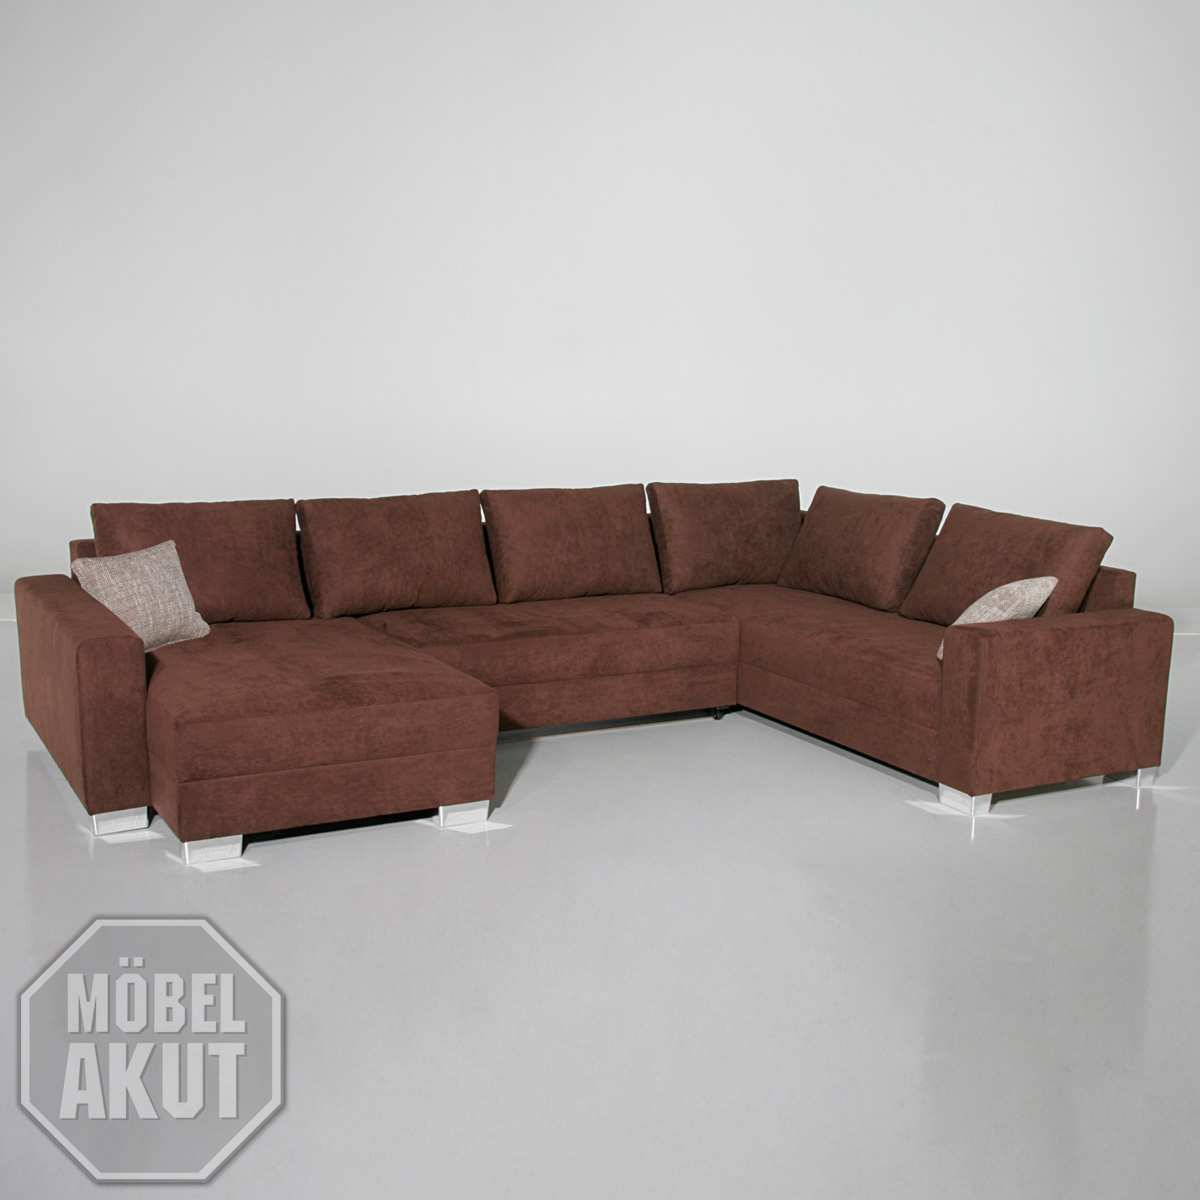 wohnlandschaft moby sofa braun bettfunktion neu ebay. Black Bedroom Furniture Sets. Home Design Ideas